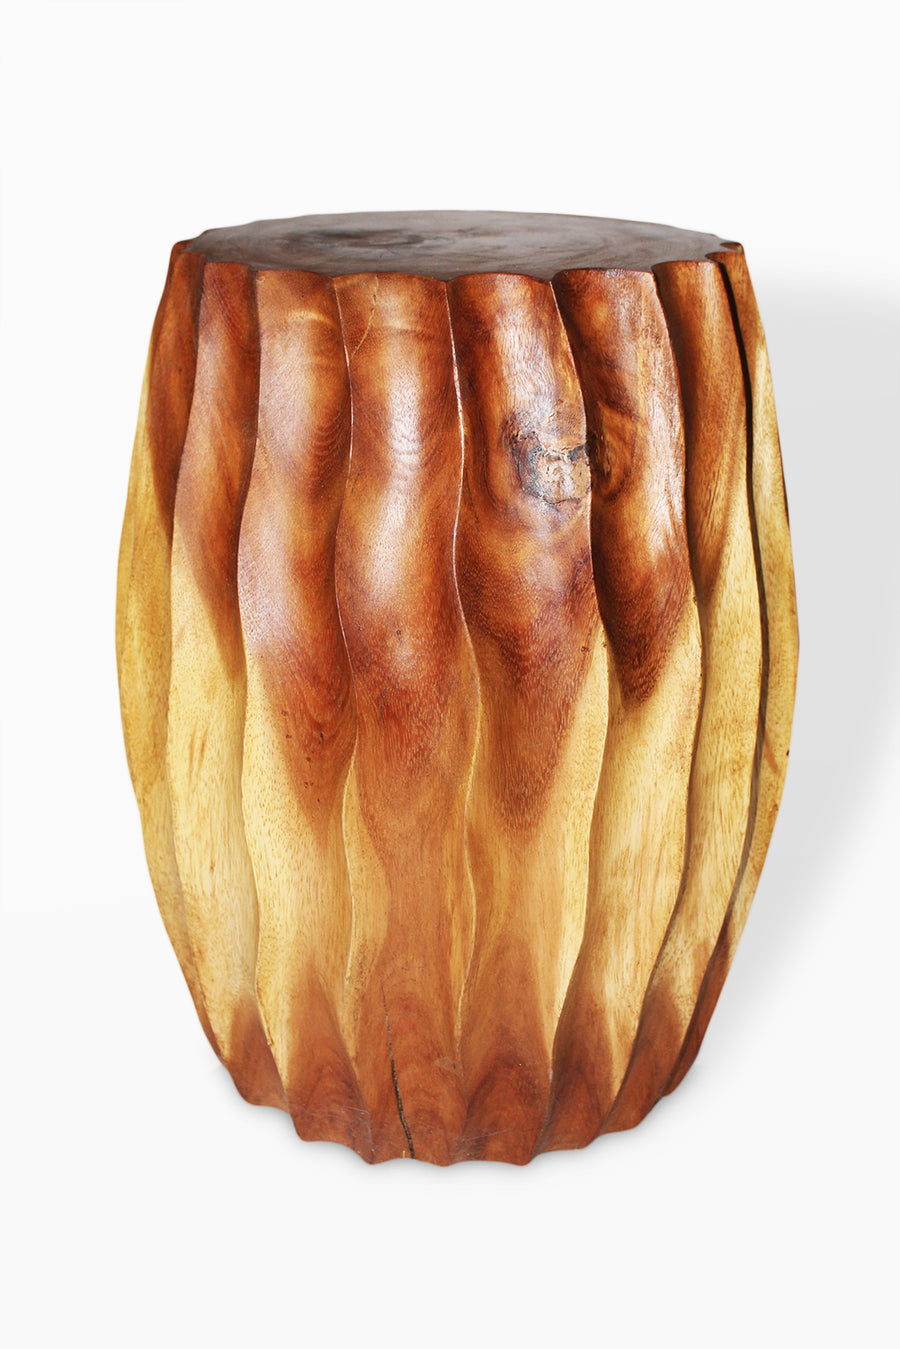 Monkey Pod  Fluted Stool Natural Finish 12 x 18